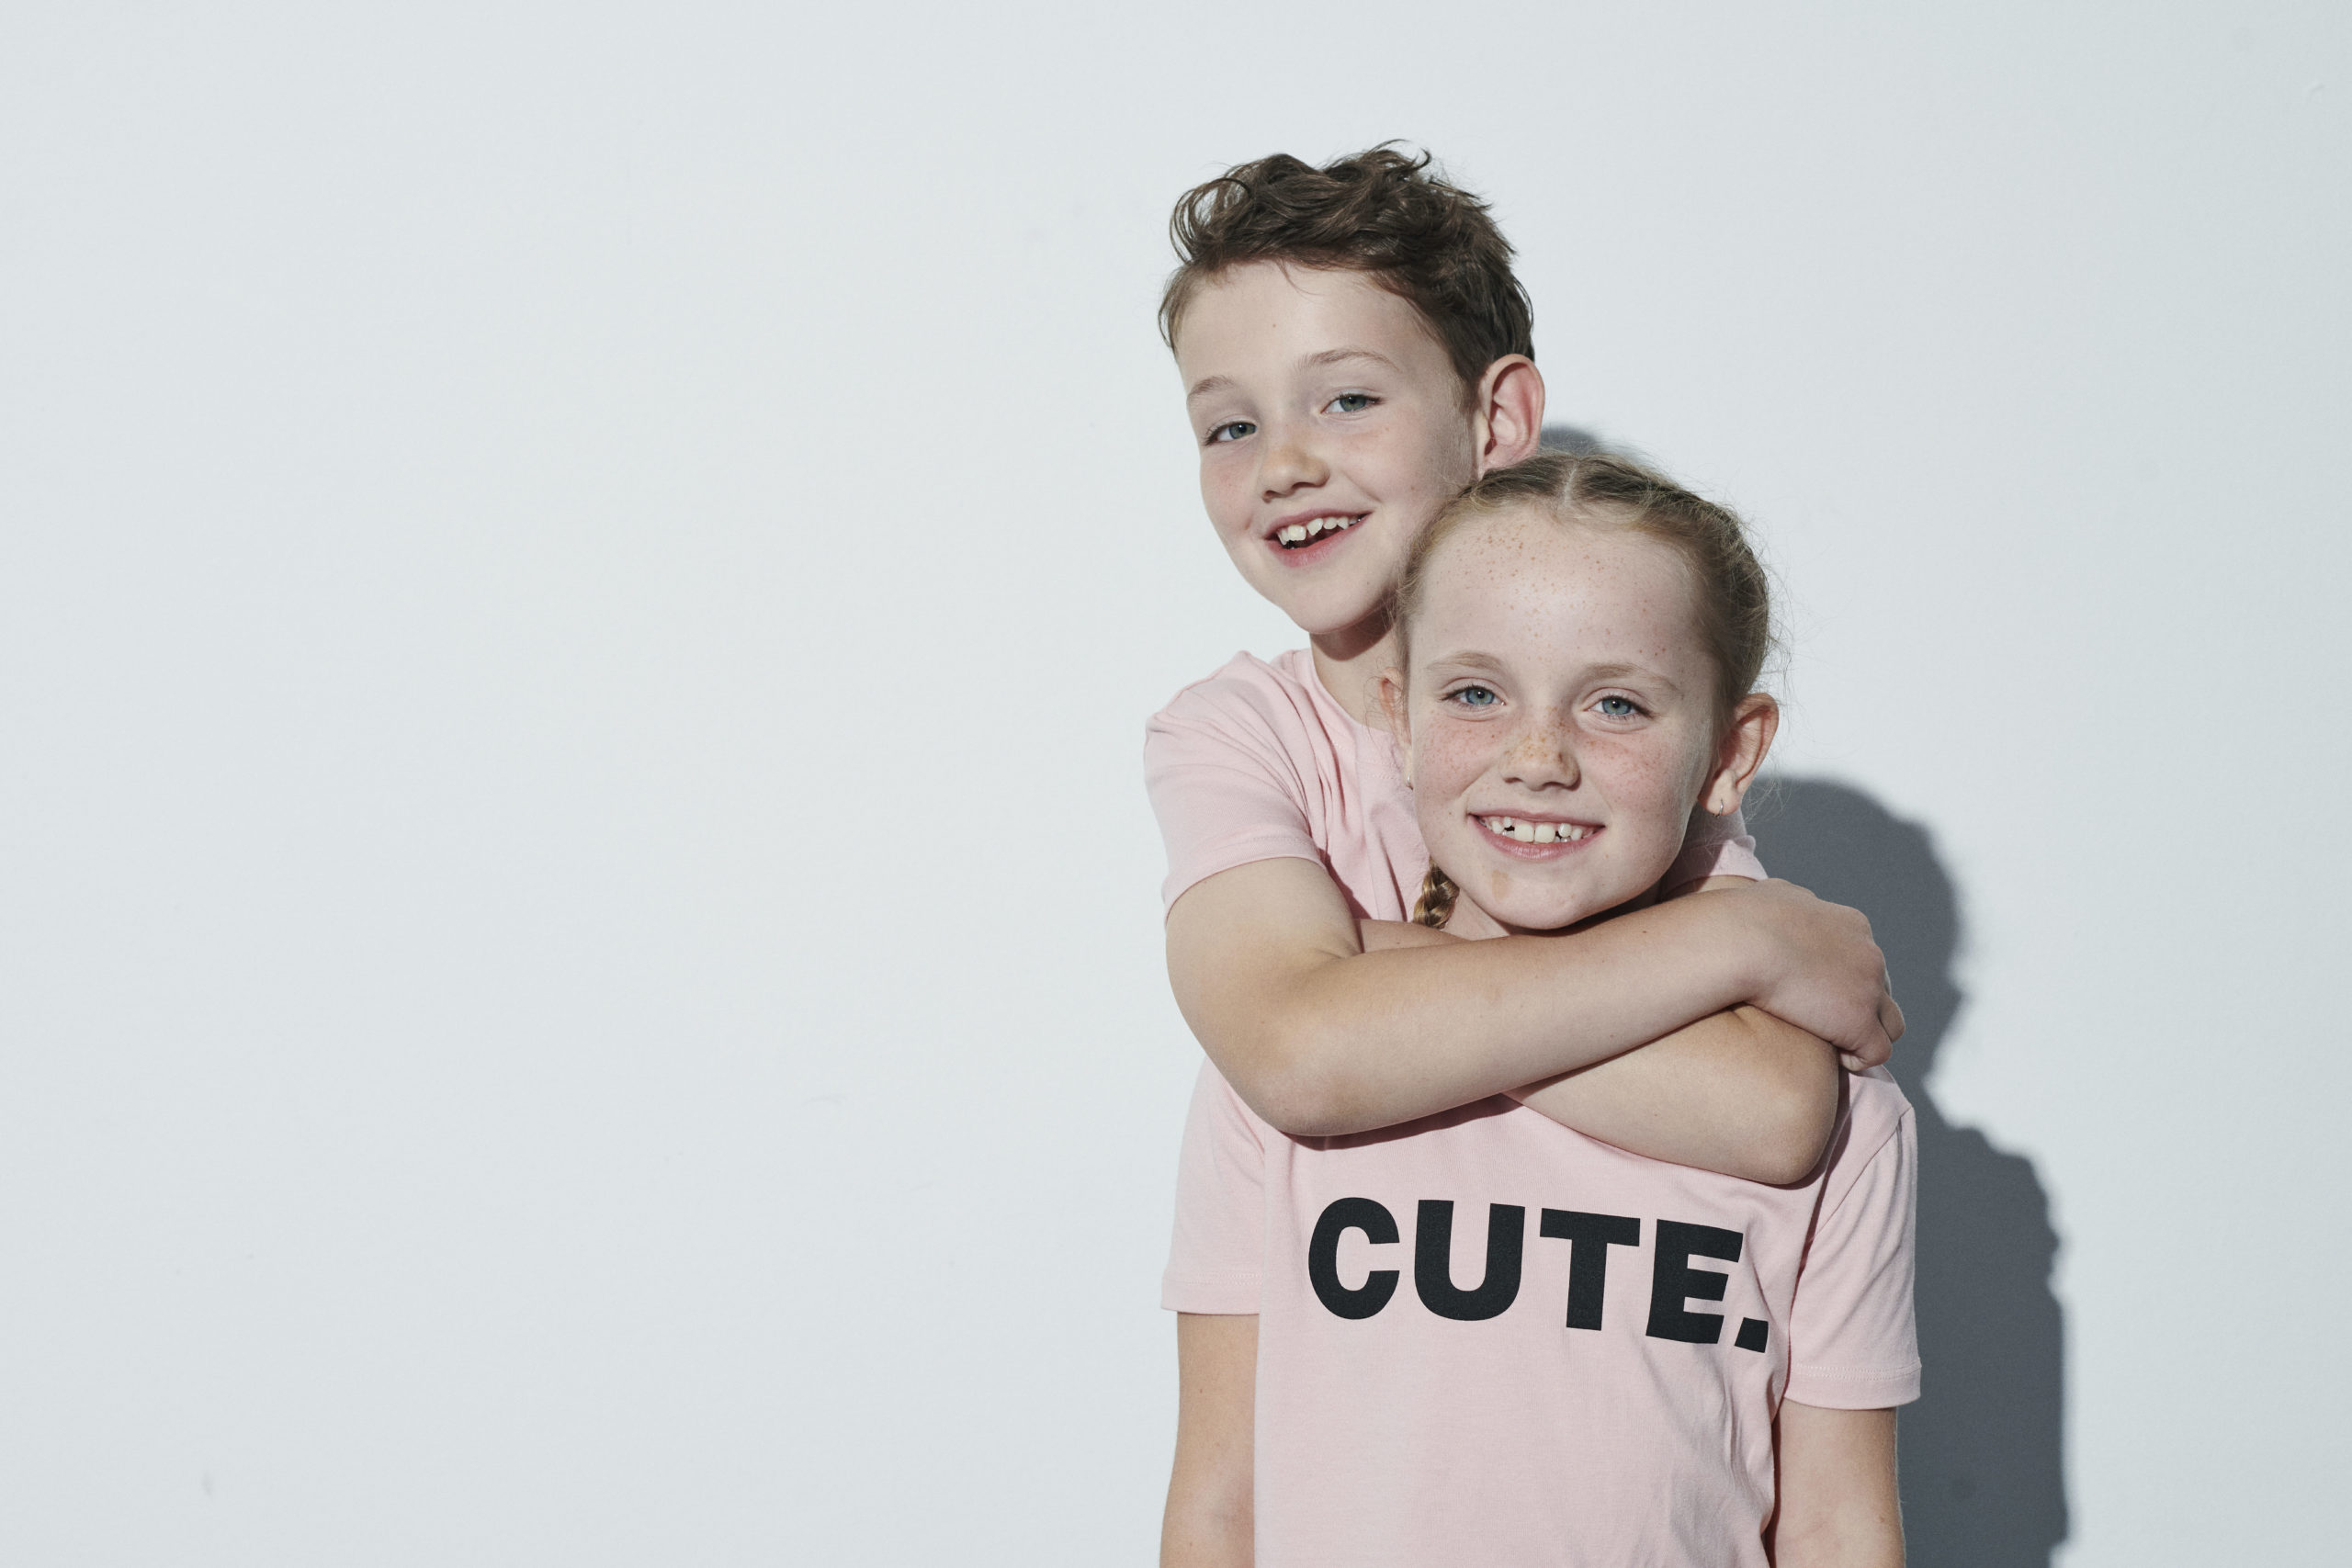 Scandi kids fashion brand New Generals returns with an aseasonal collection